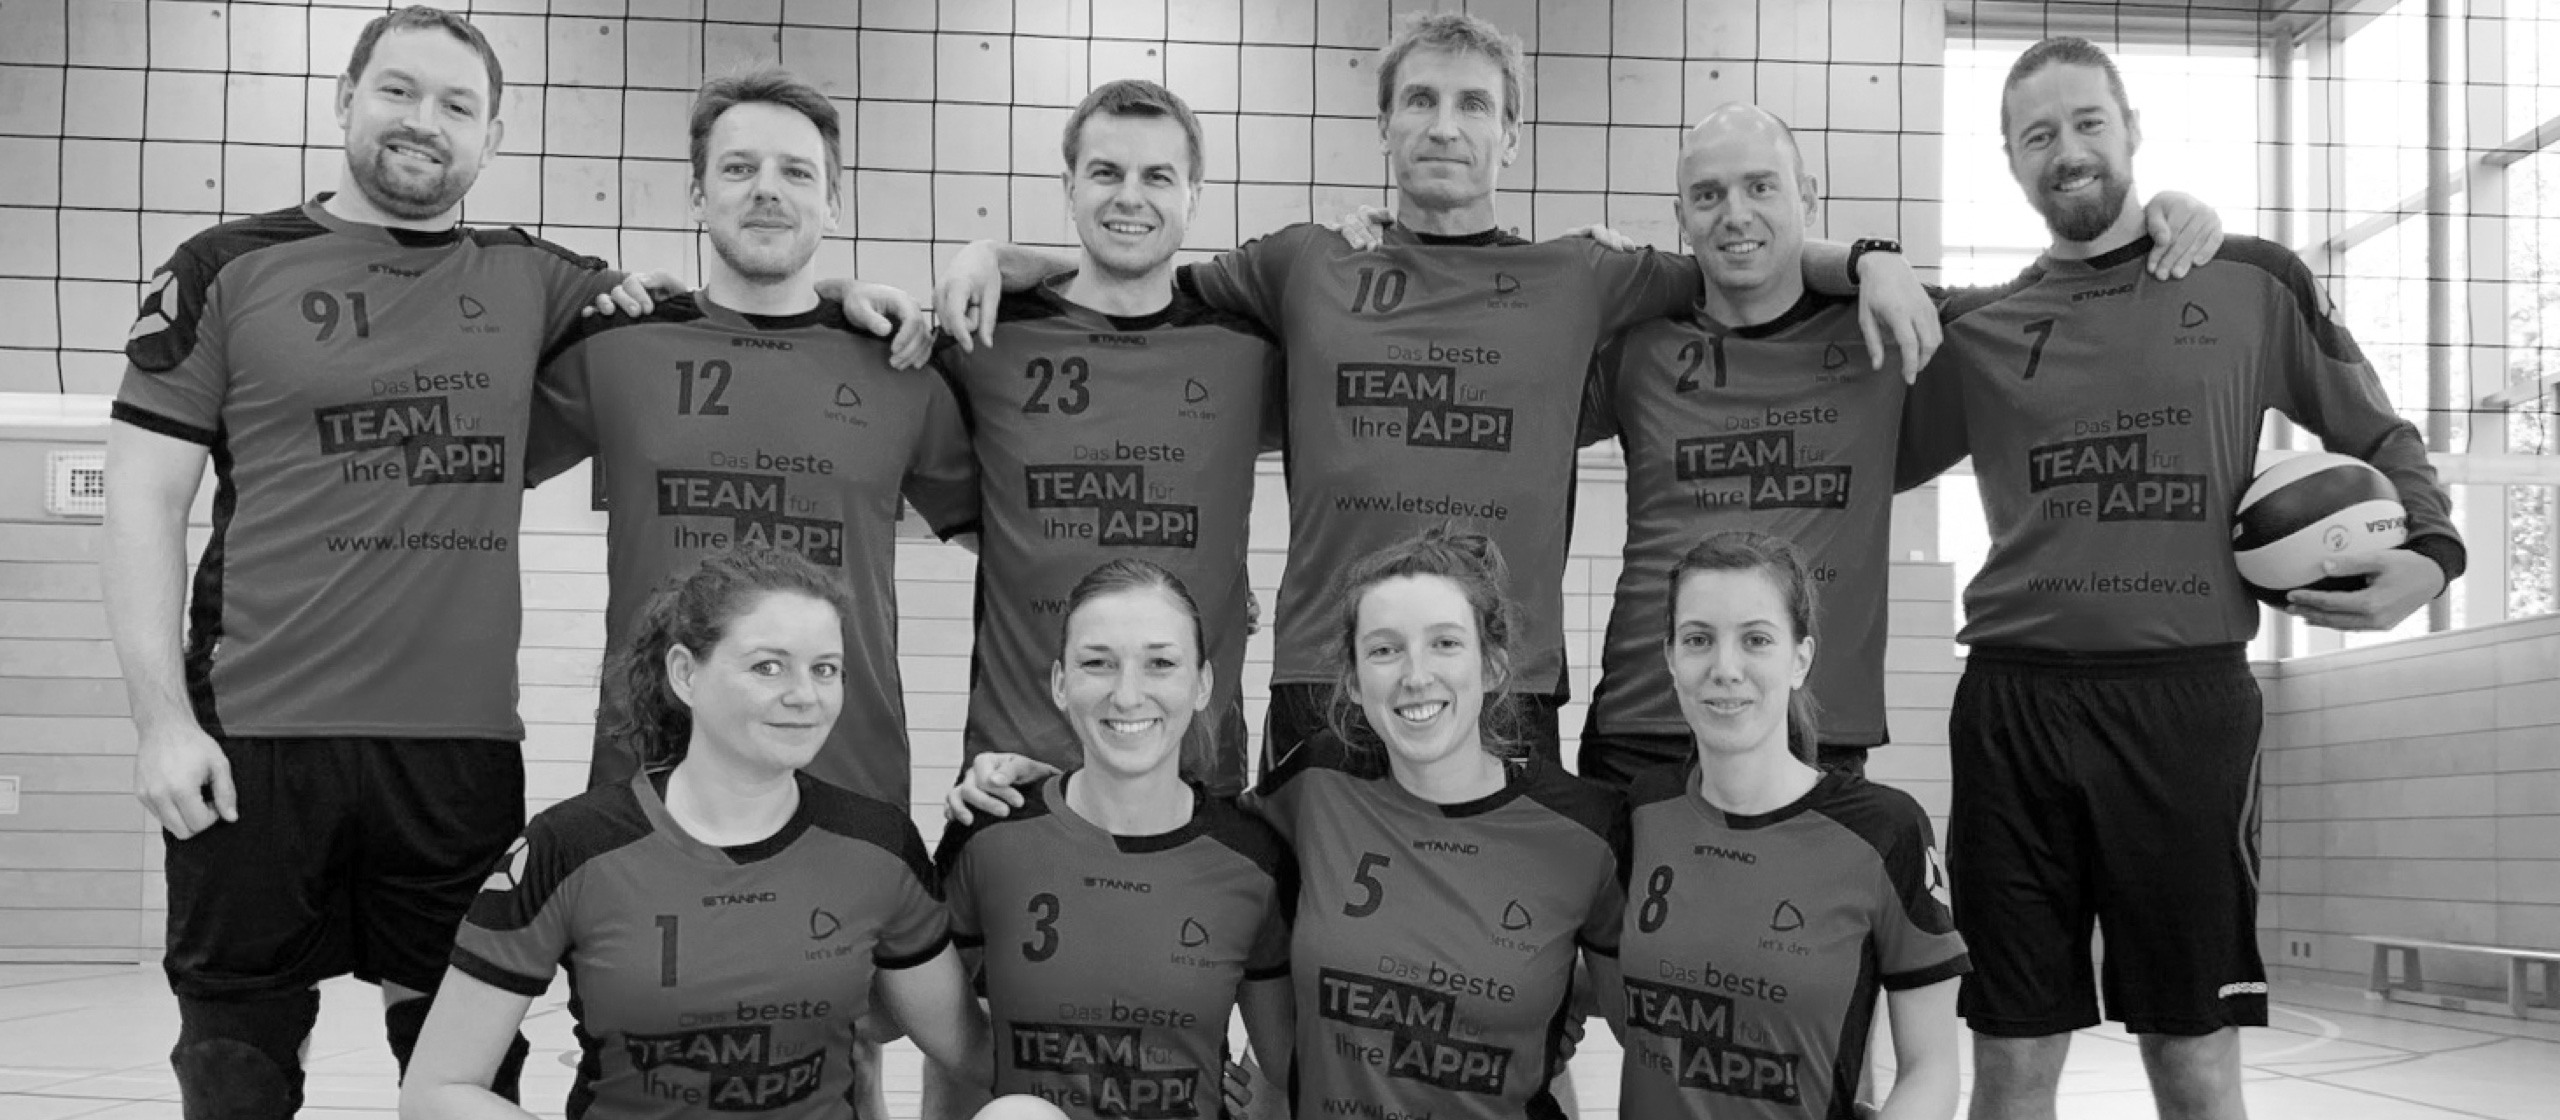 let's dev Blog | let's dev supports SG Siemens volleyball players from Karlsruhe